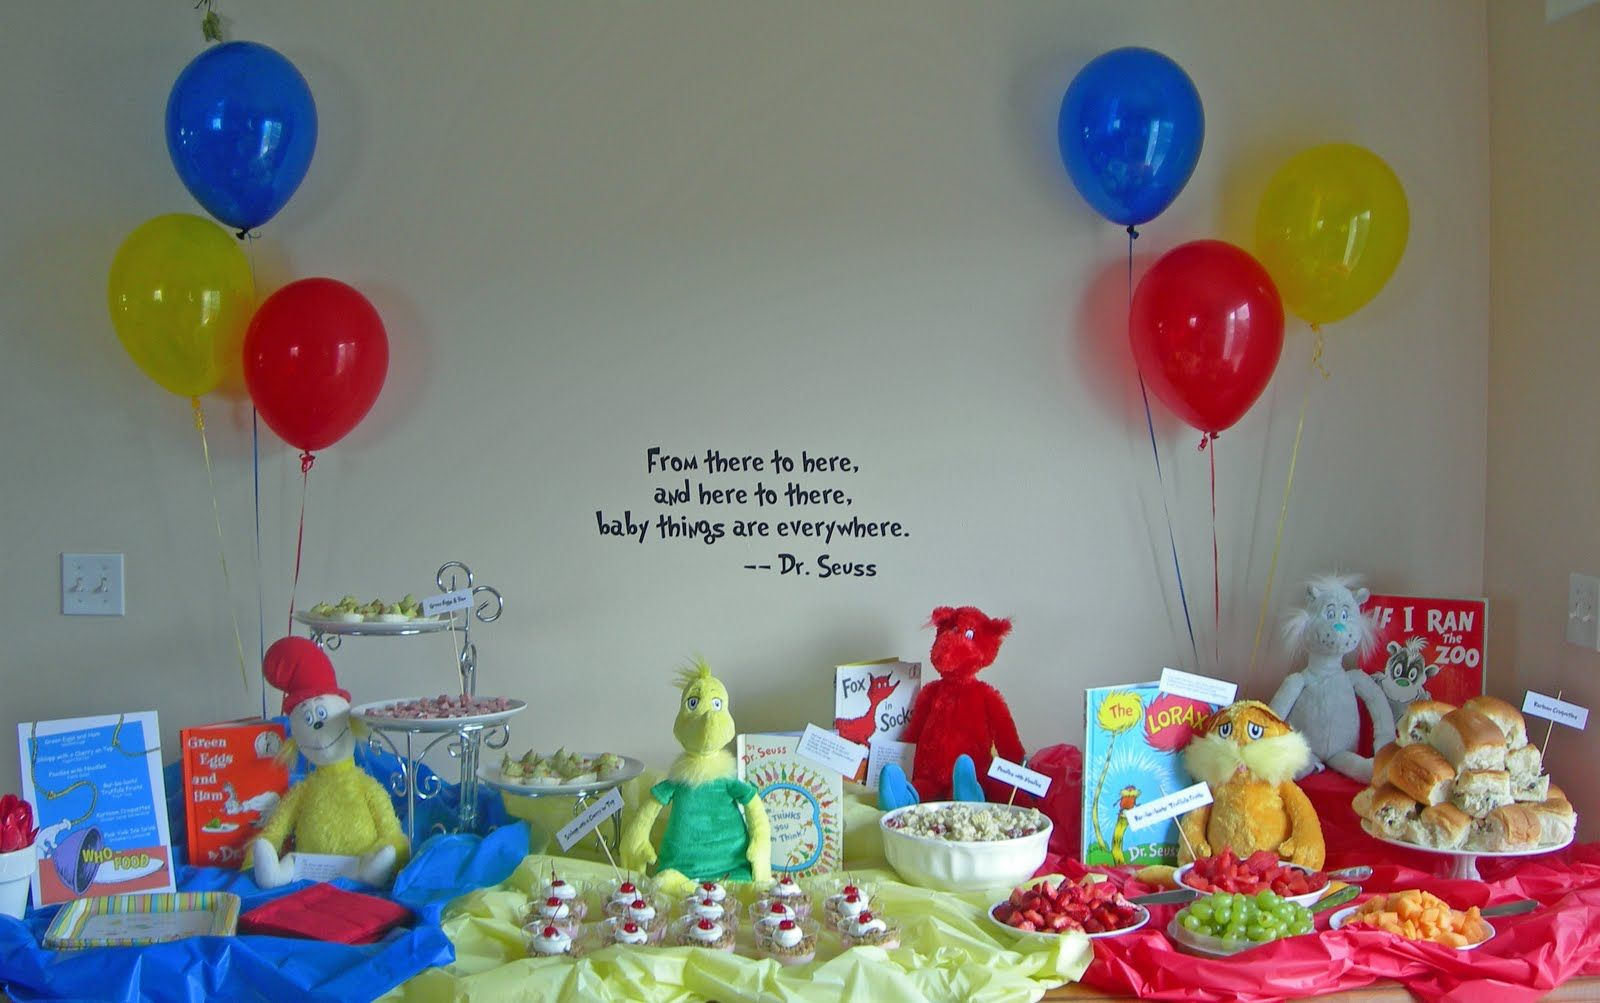 Dr Seuss Baby Shower Food Changed The Word Funny To Baby Since It